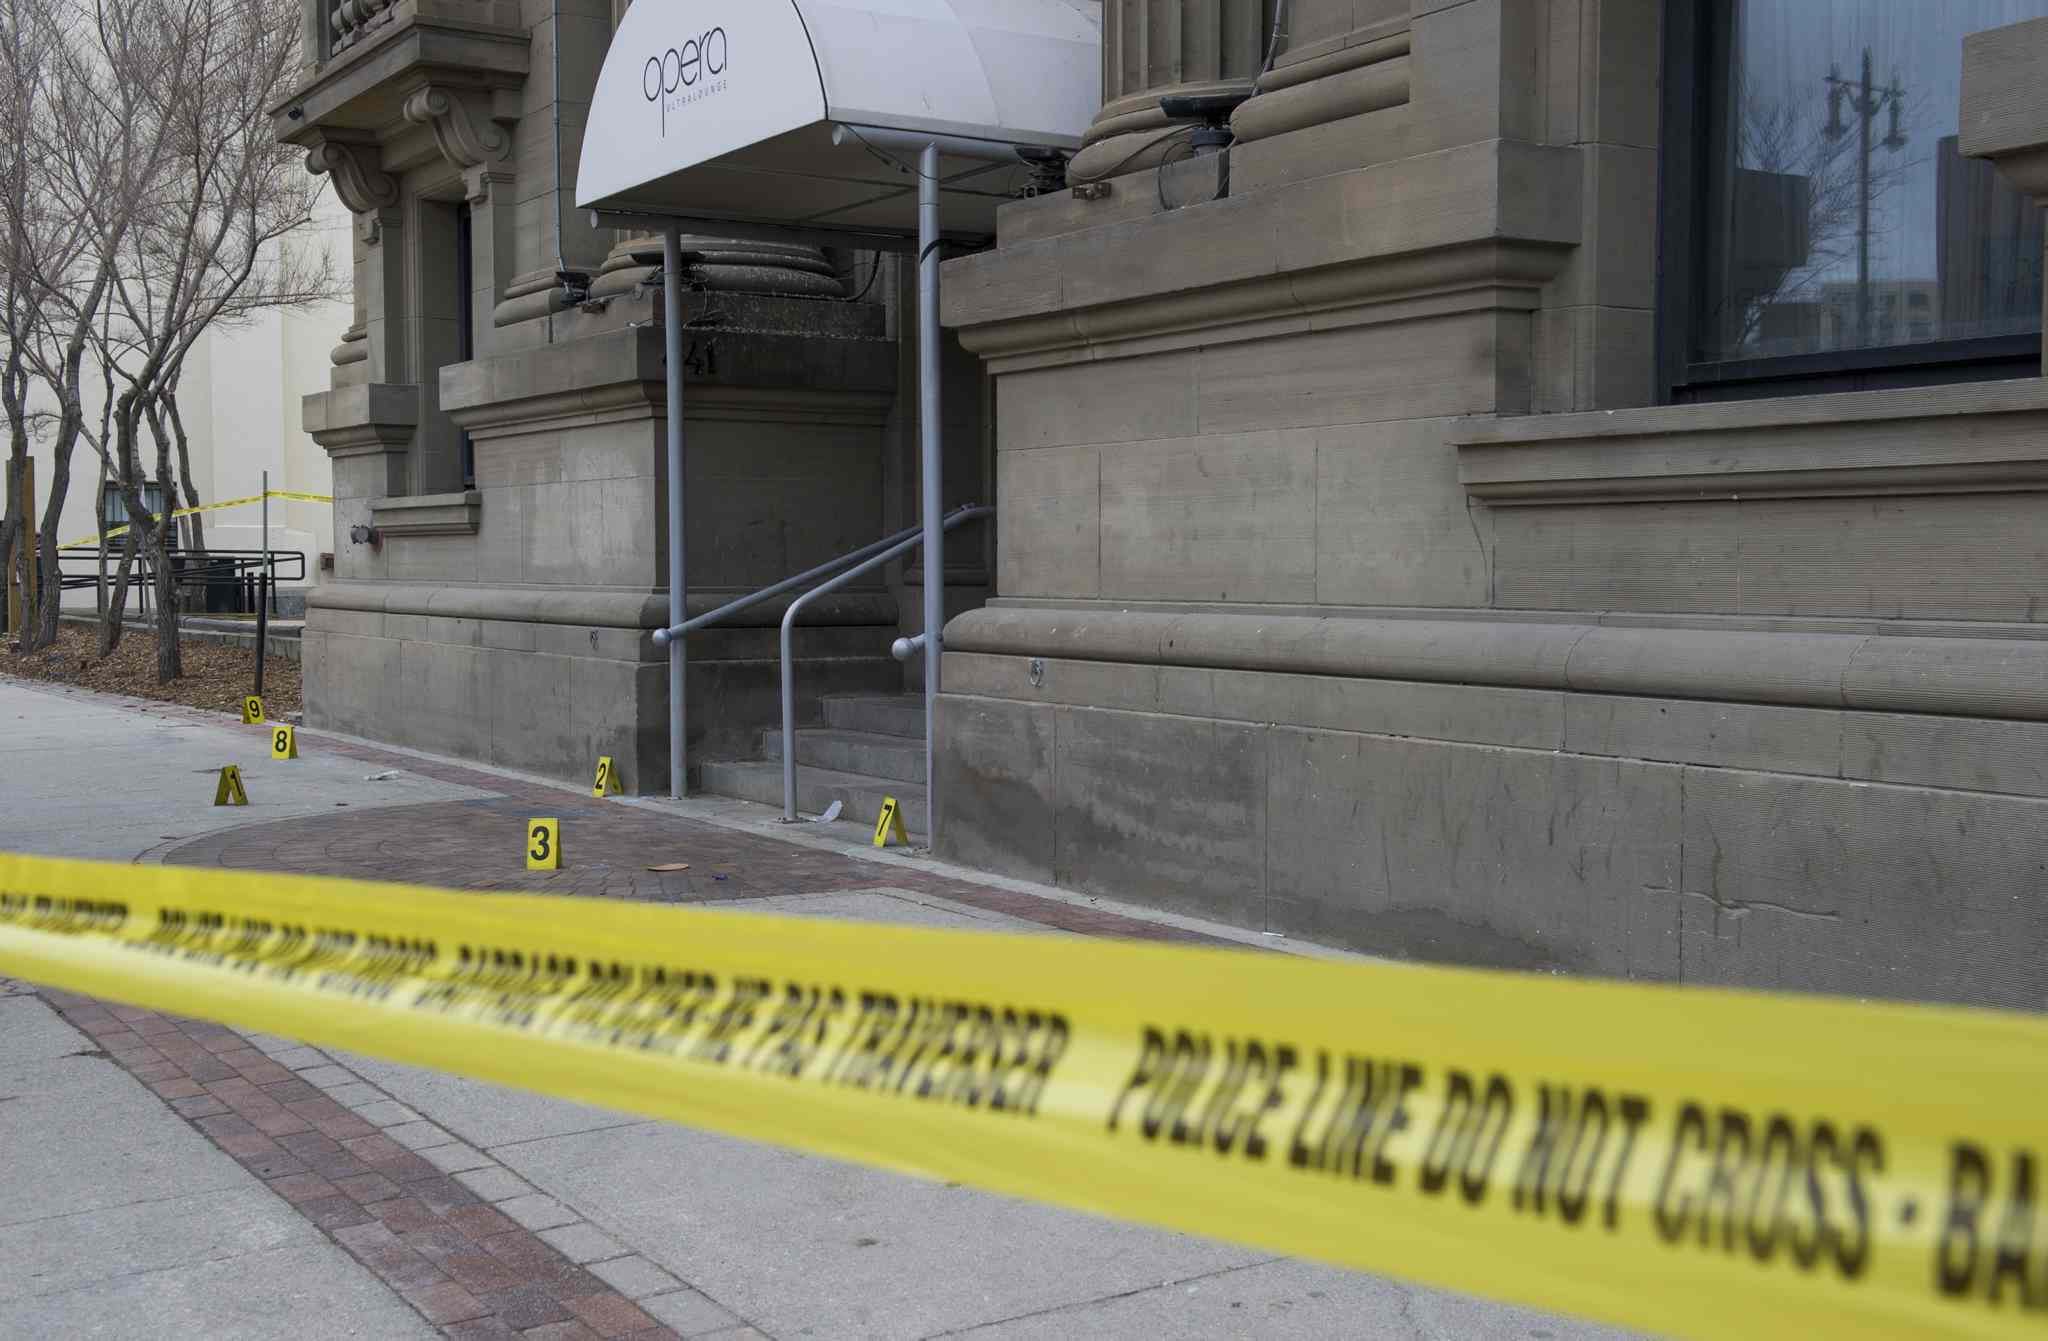 Police tape and evidence markers on Main Street outside the Opera Ultralounge nightclub.